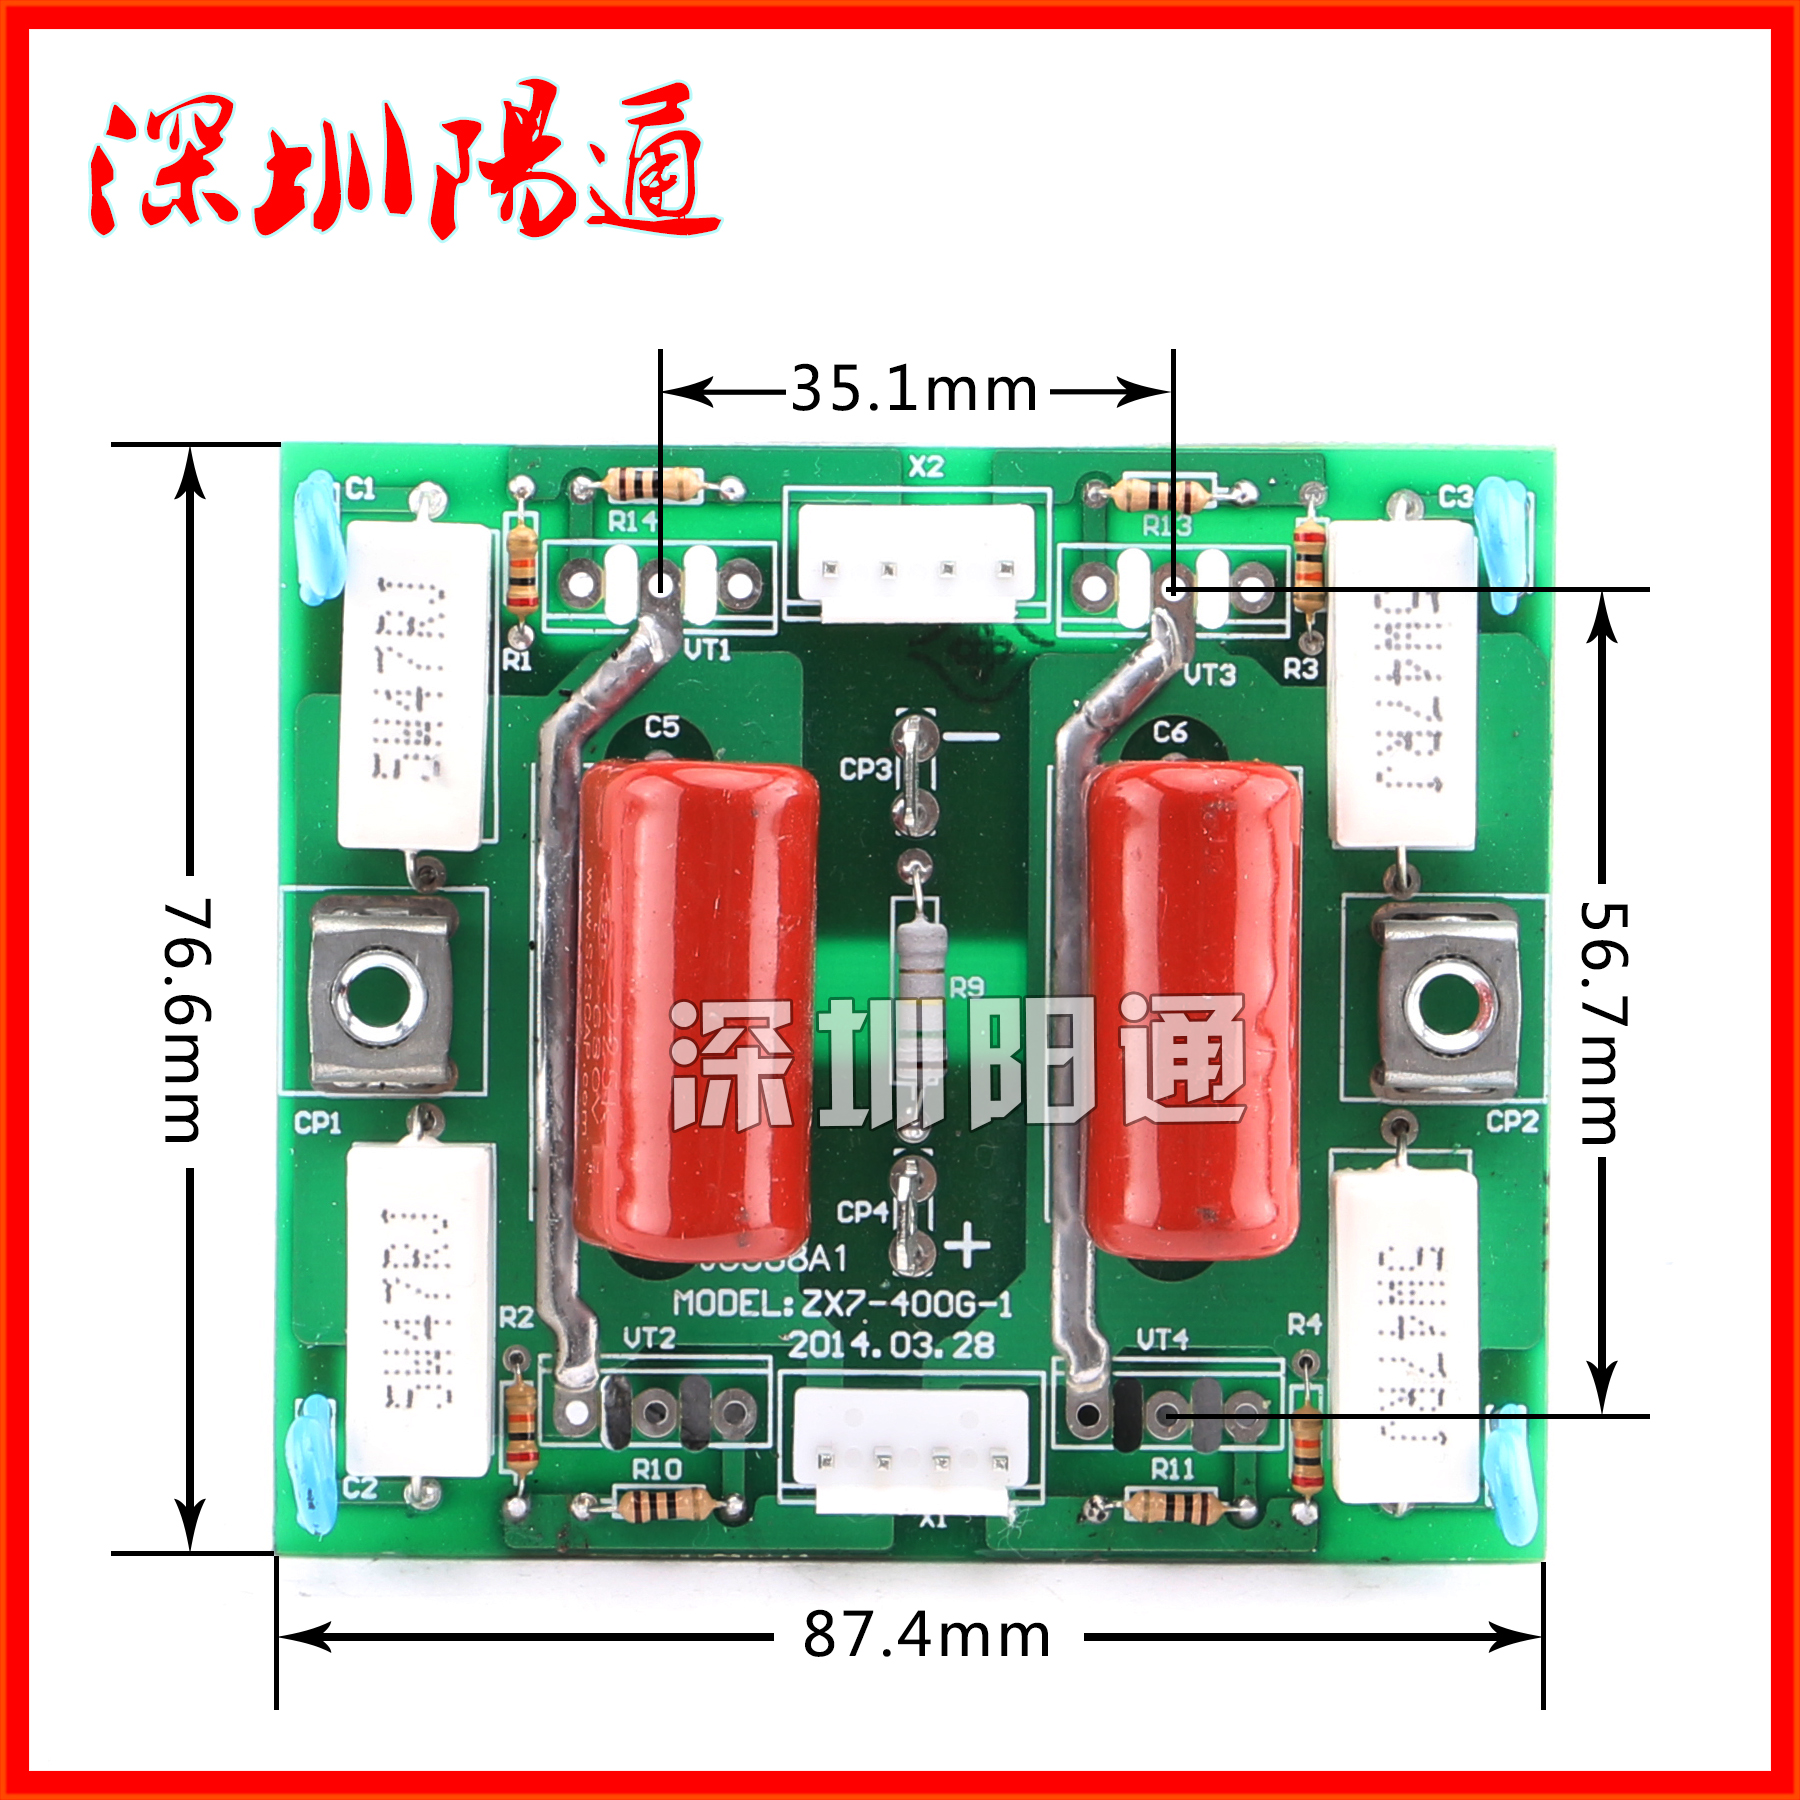 medium resolution of single tube zx7400igbt electric welding machine inverter plate constant feed inverter dc electric welding machine circuit boar in air conditioner parts from